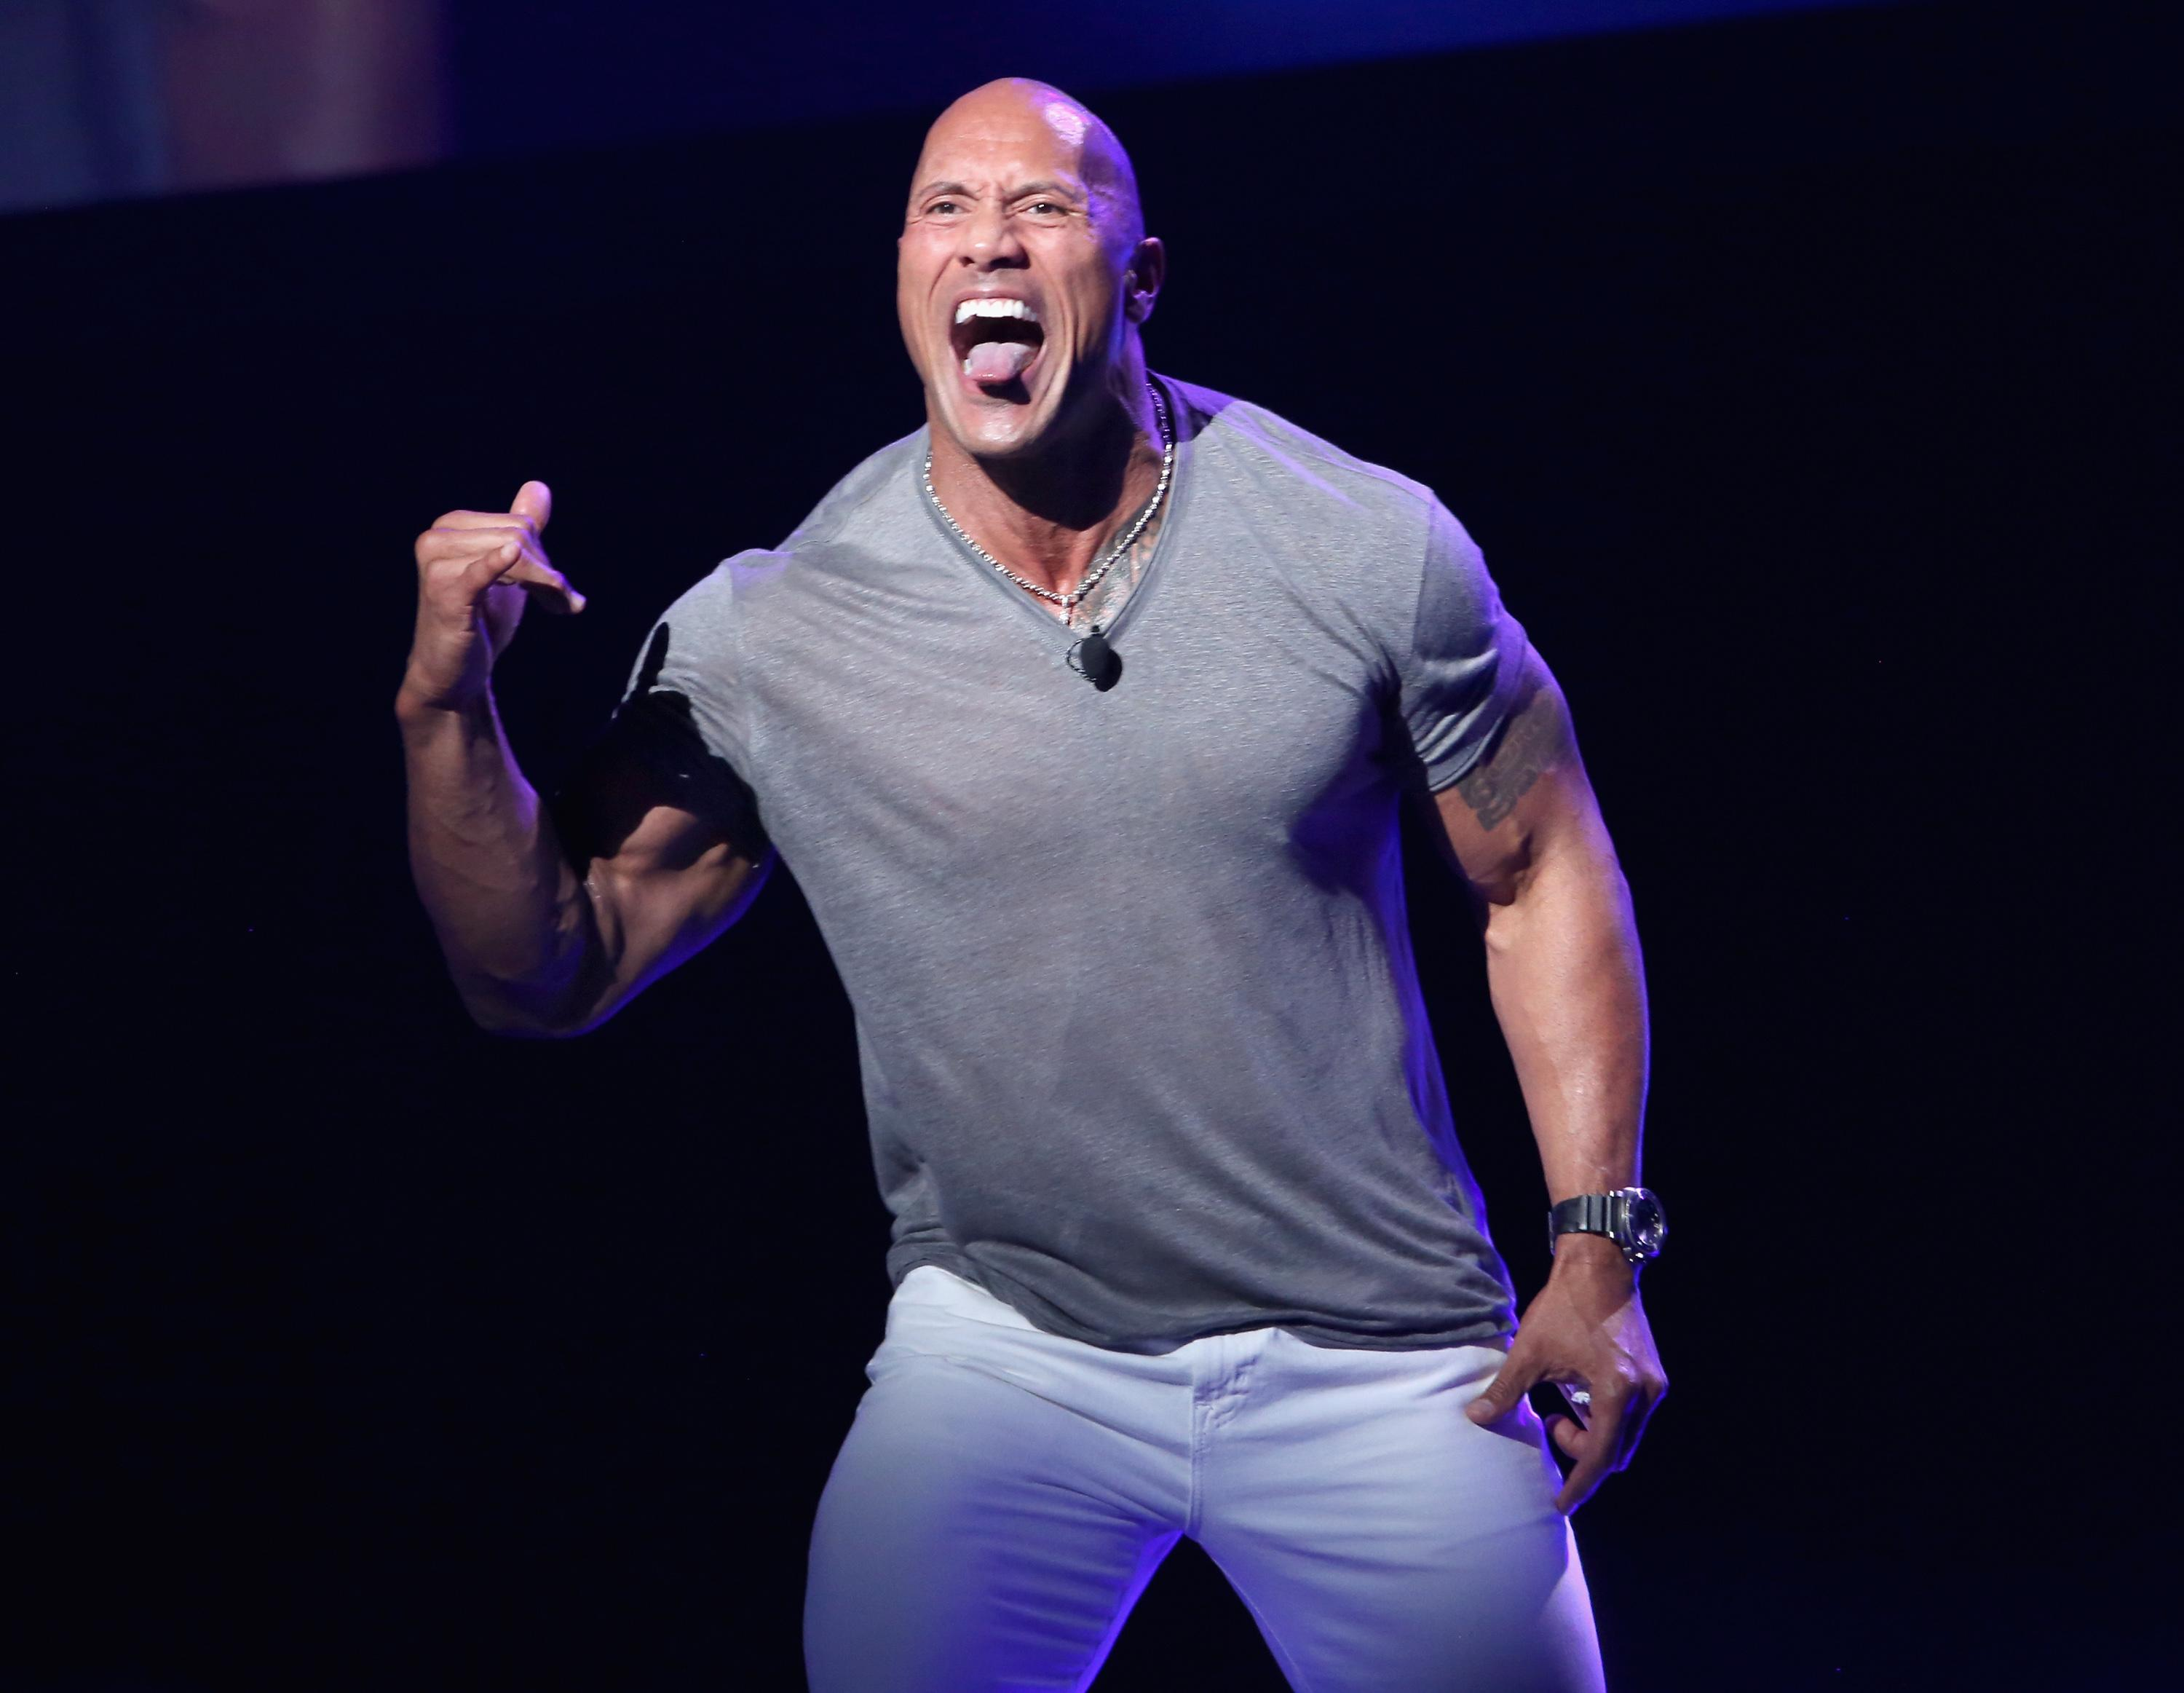 Dwayne 'The Rock' Johnson surprises contestants on fast and furious 'Songland' episode